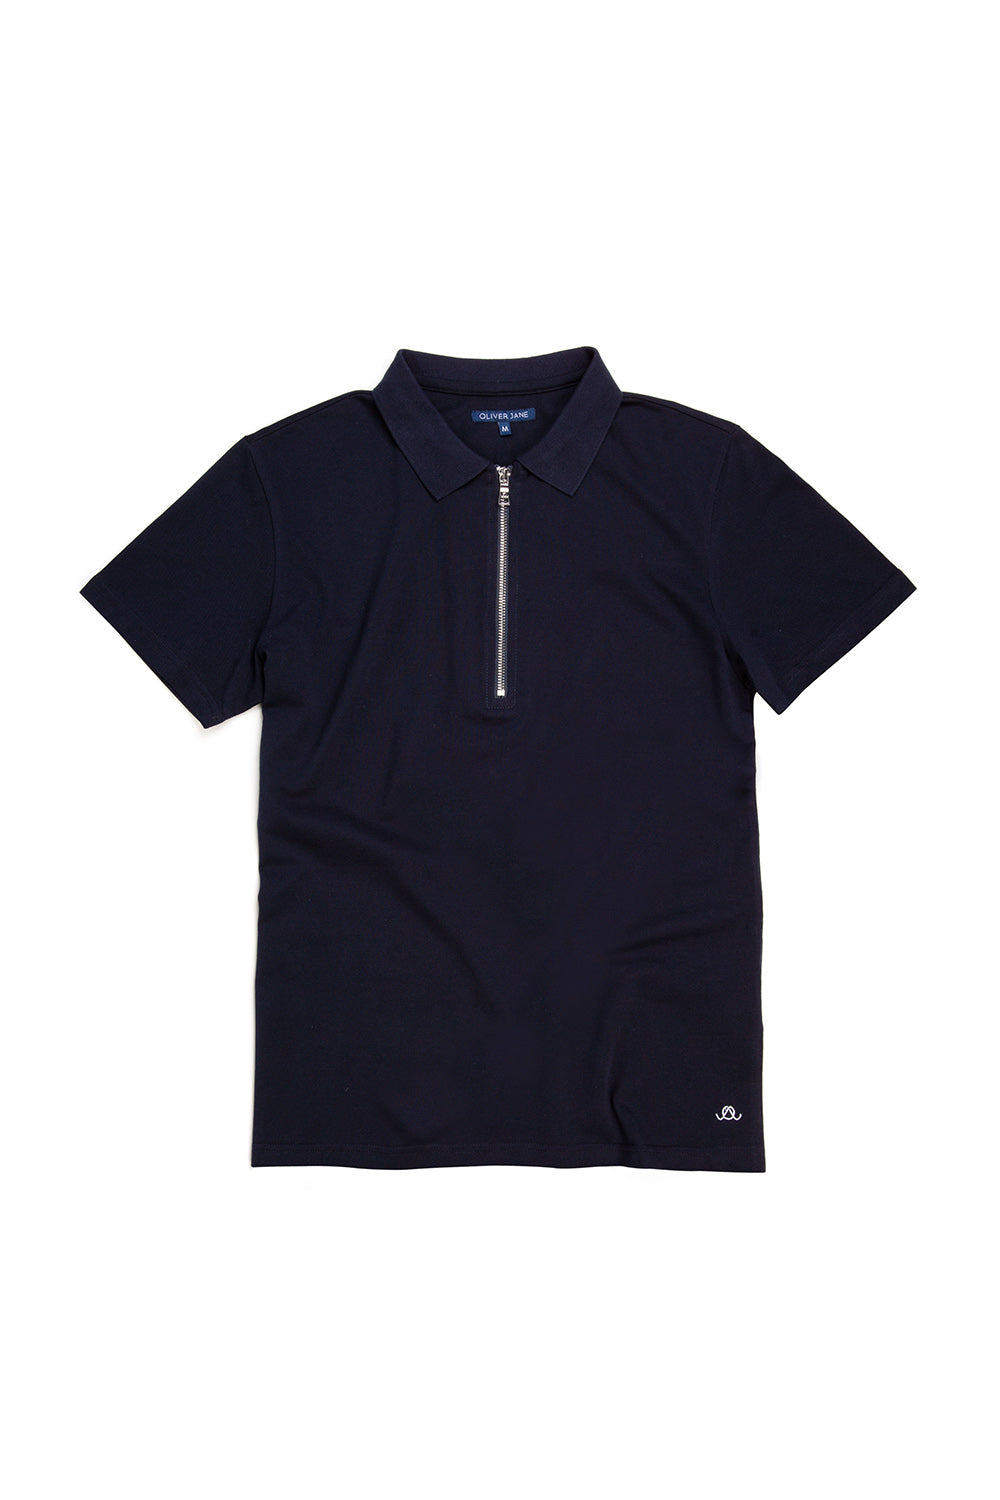 The Navy Miami Polo Classic Fit